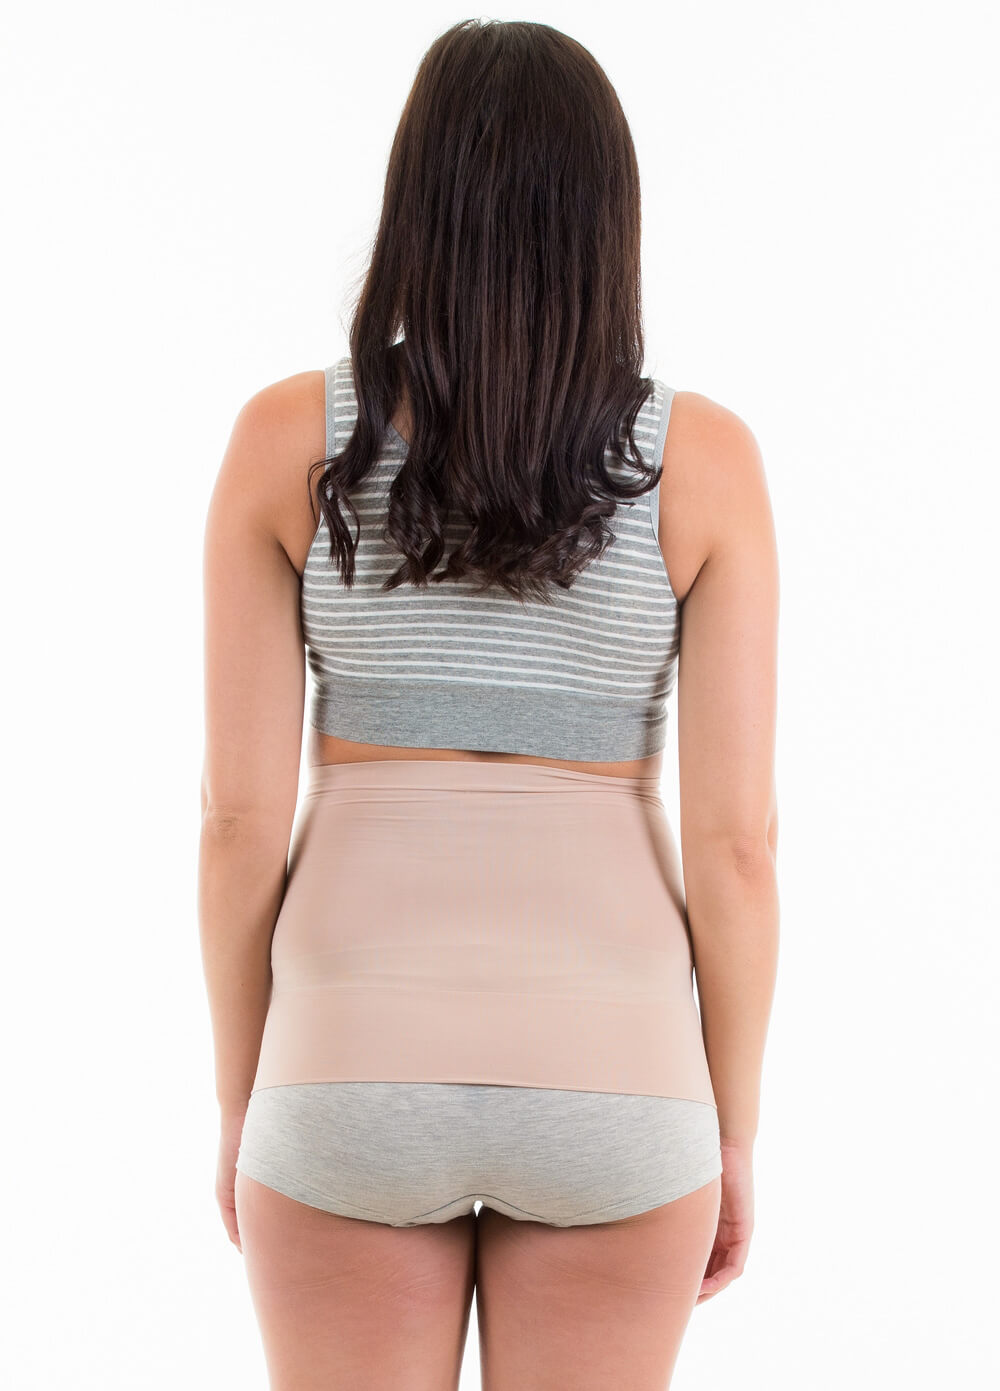 Maternity Support Belly Band in Nude by Preggers